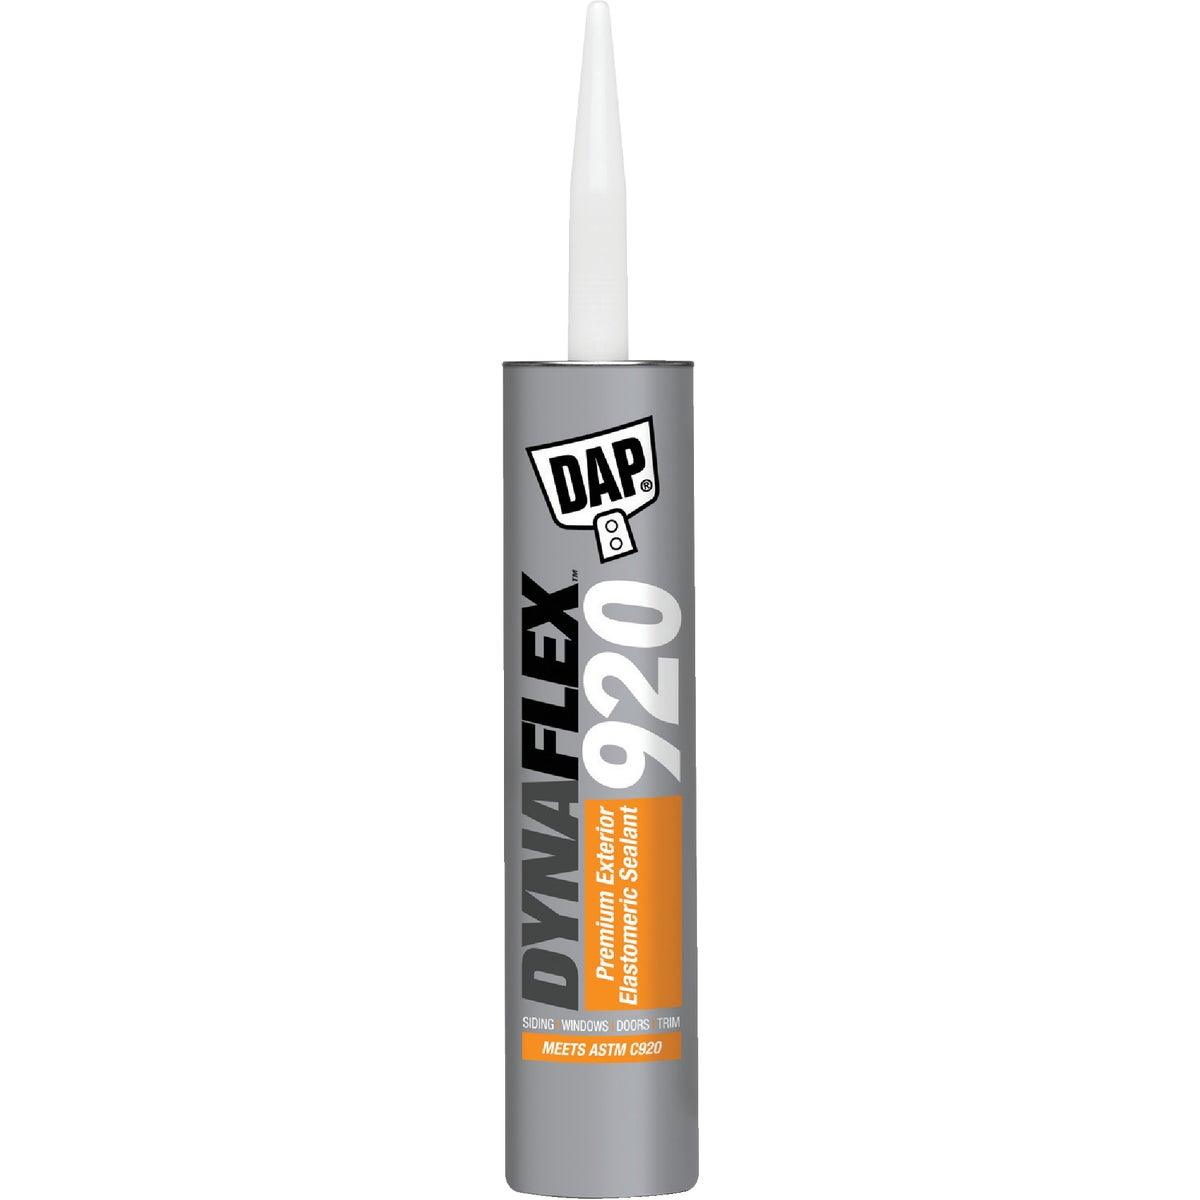 DYNFLX 920 CR010 SEALANT - 89202 by Dap Inc